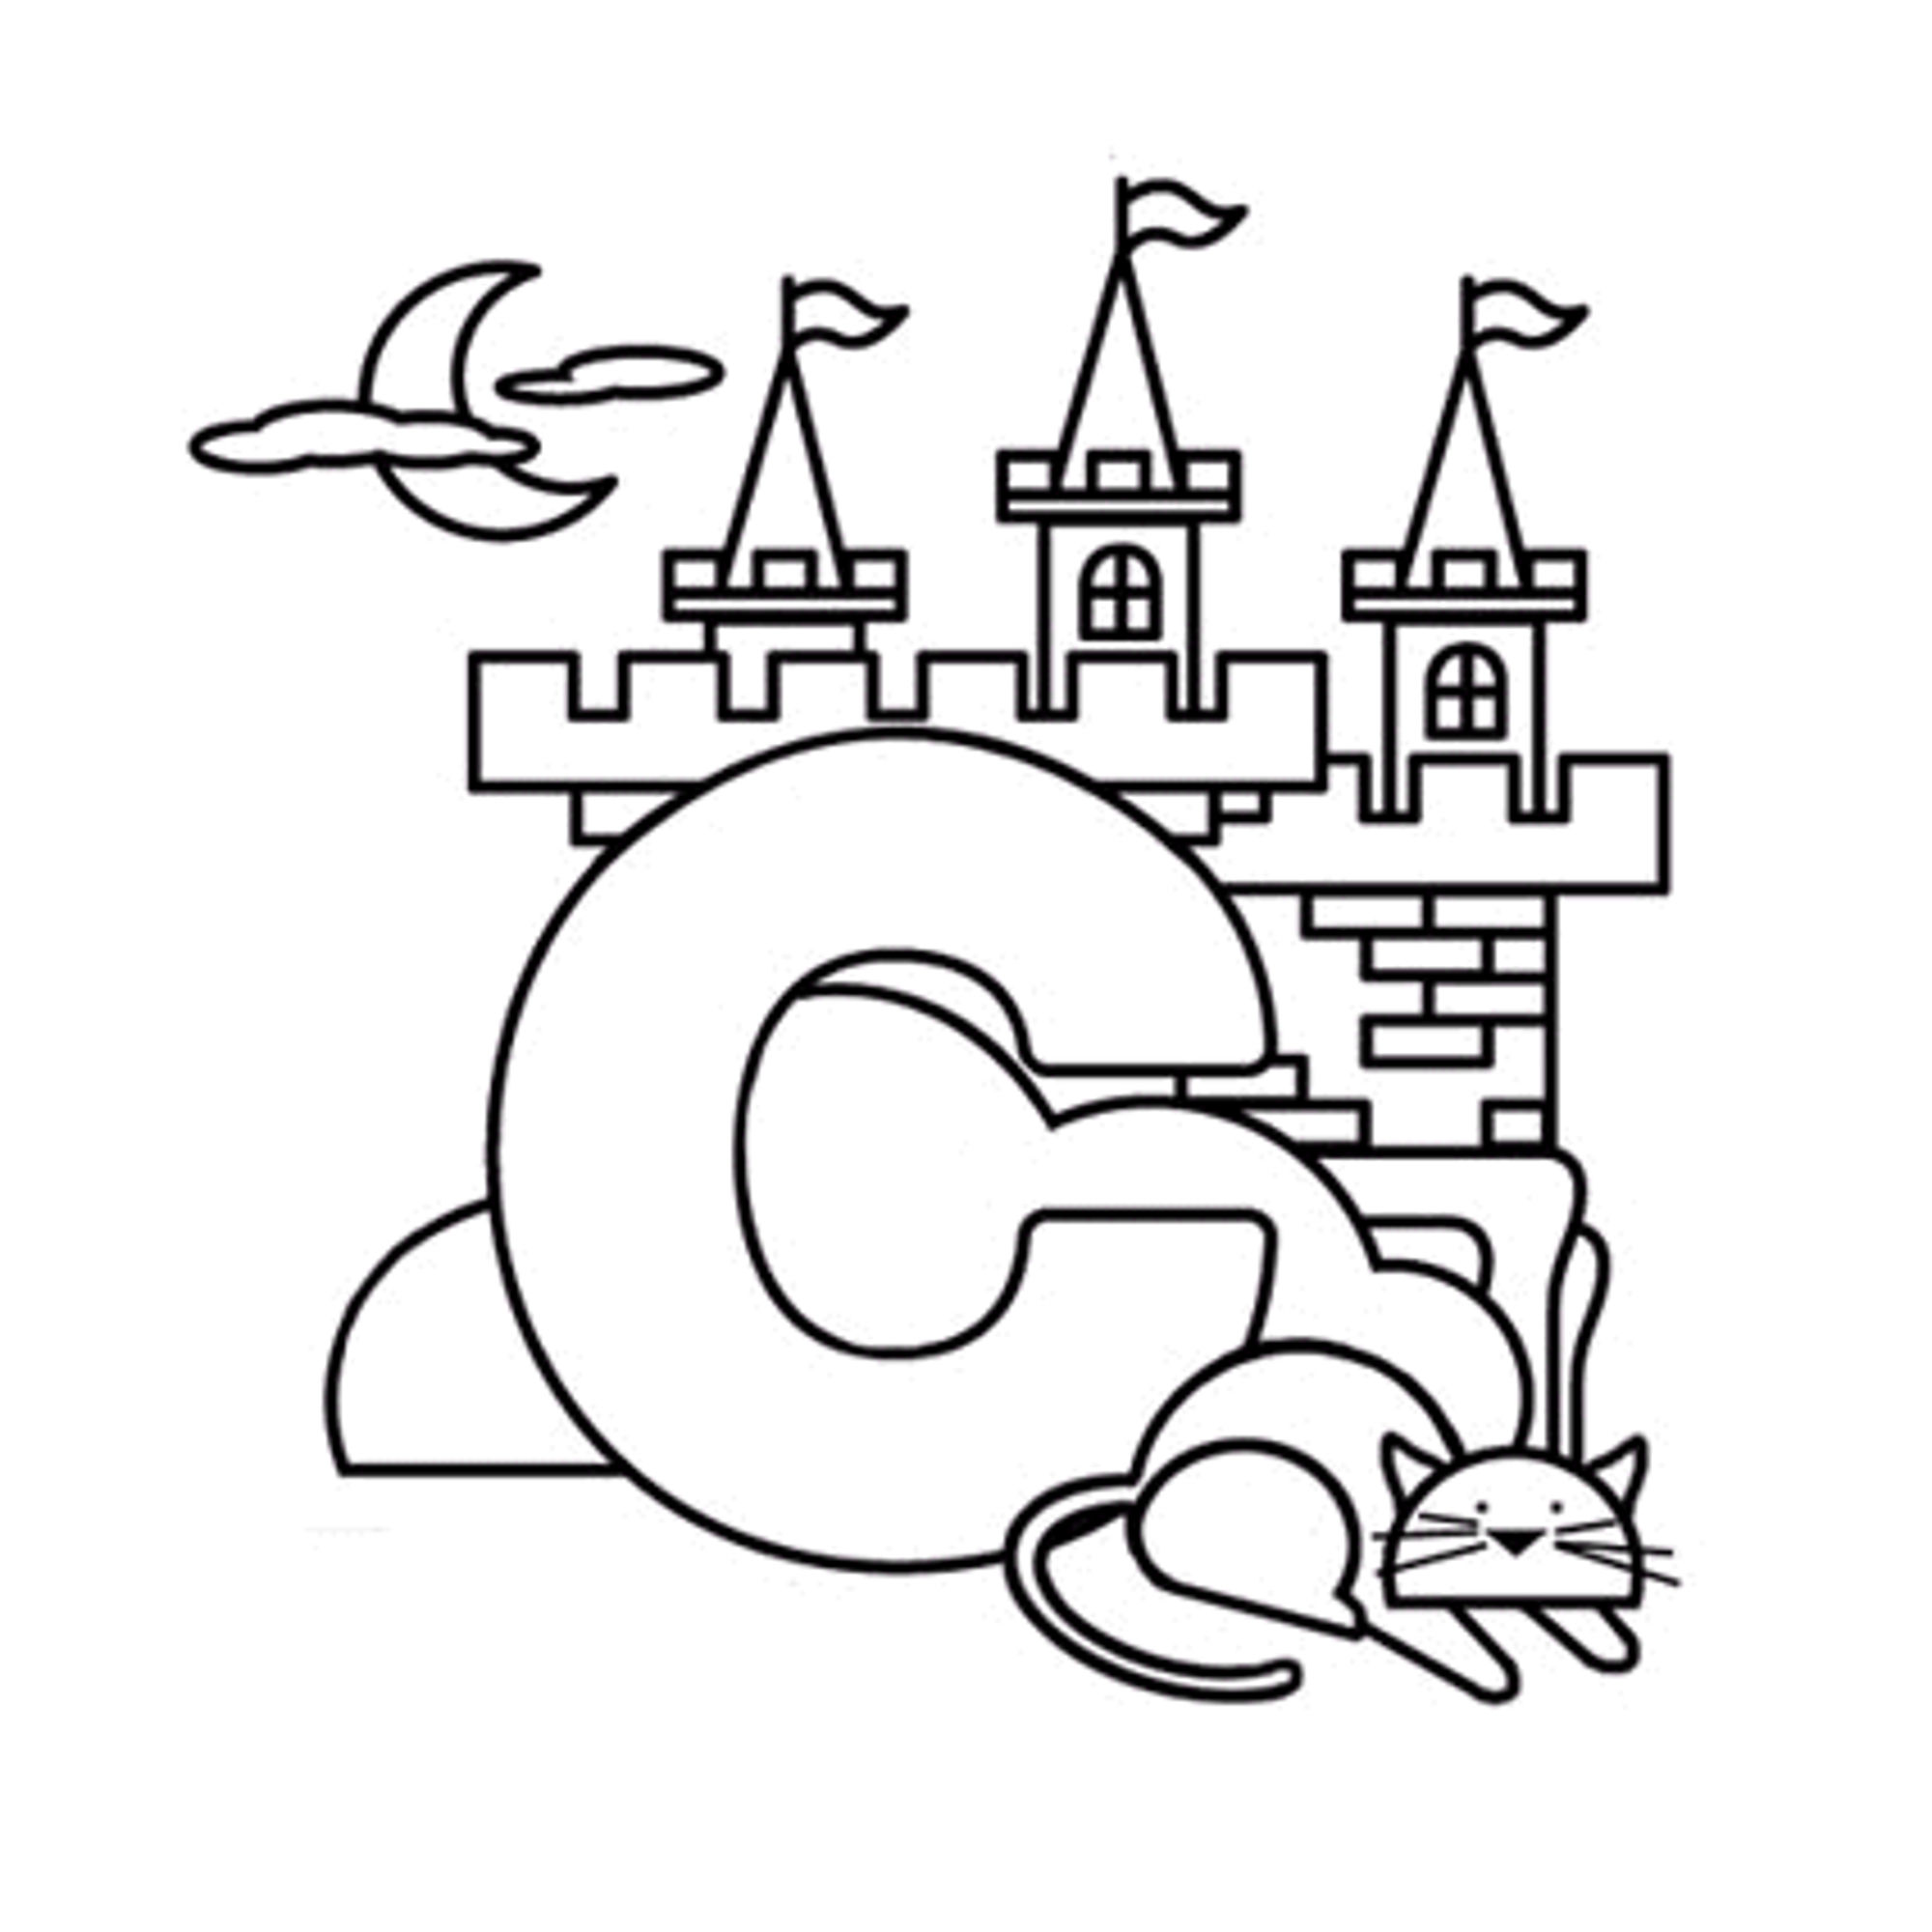 Coloring Pages The Letter C Coloring Pages click the letter c is for cat coloring pages worksheet toddlers cake page kids